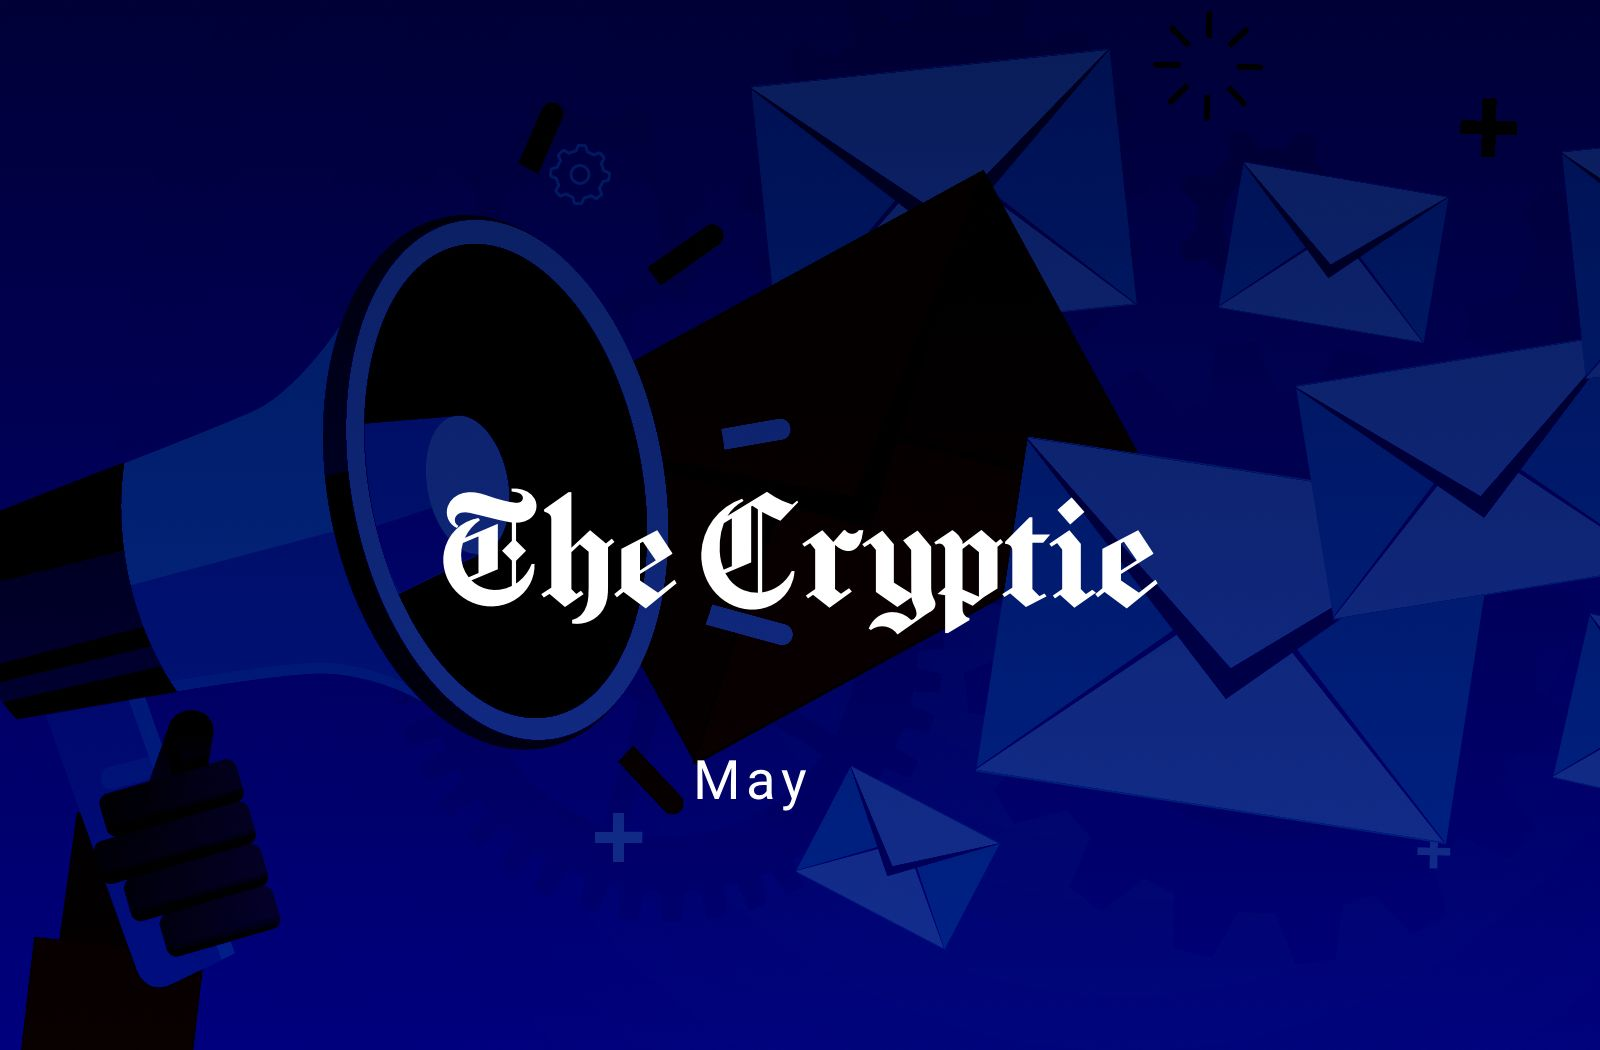 Welcome to the May Cryptie